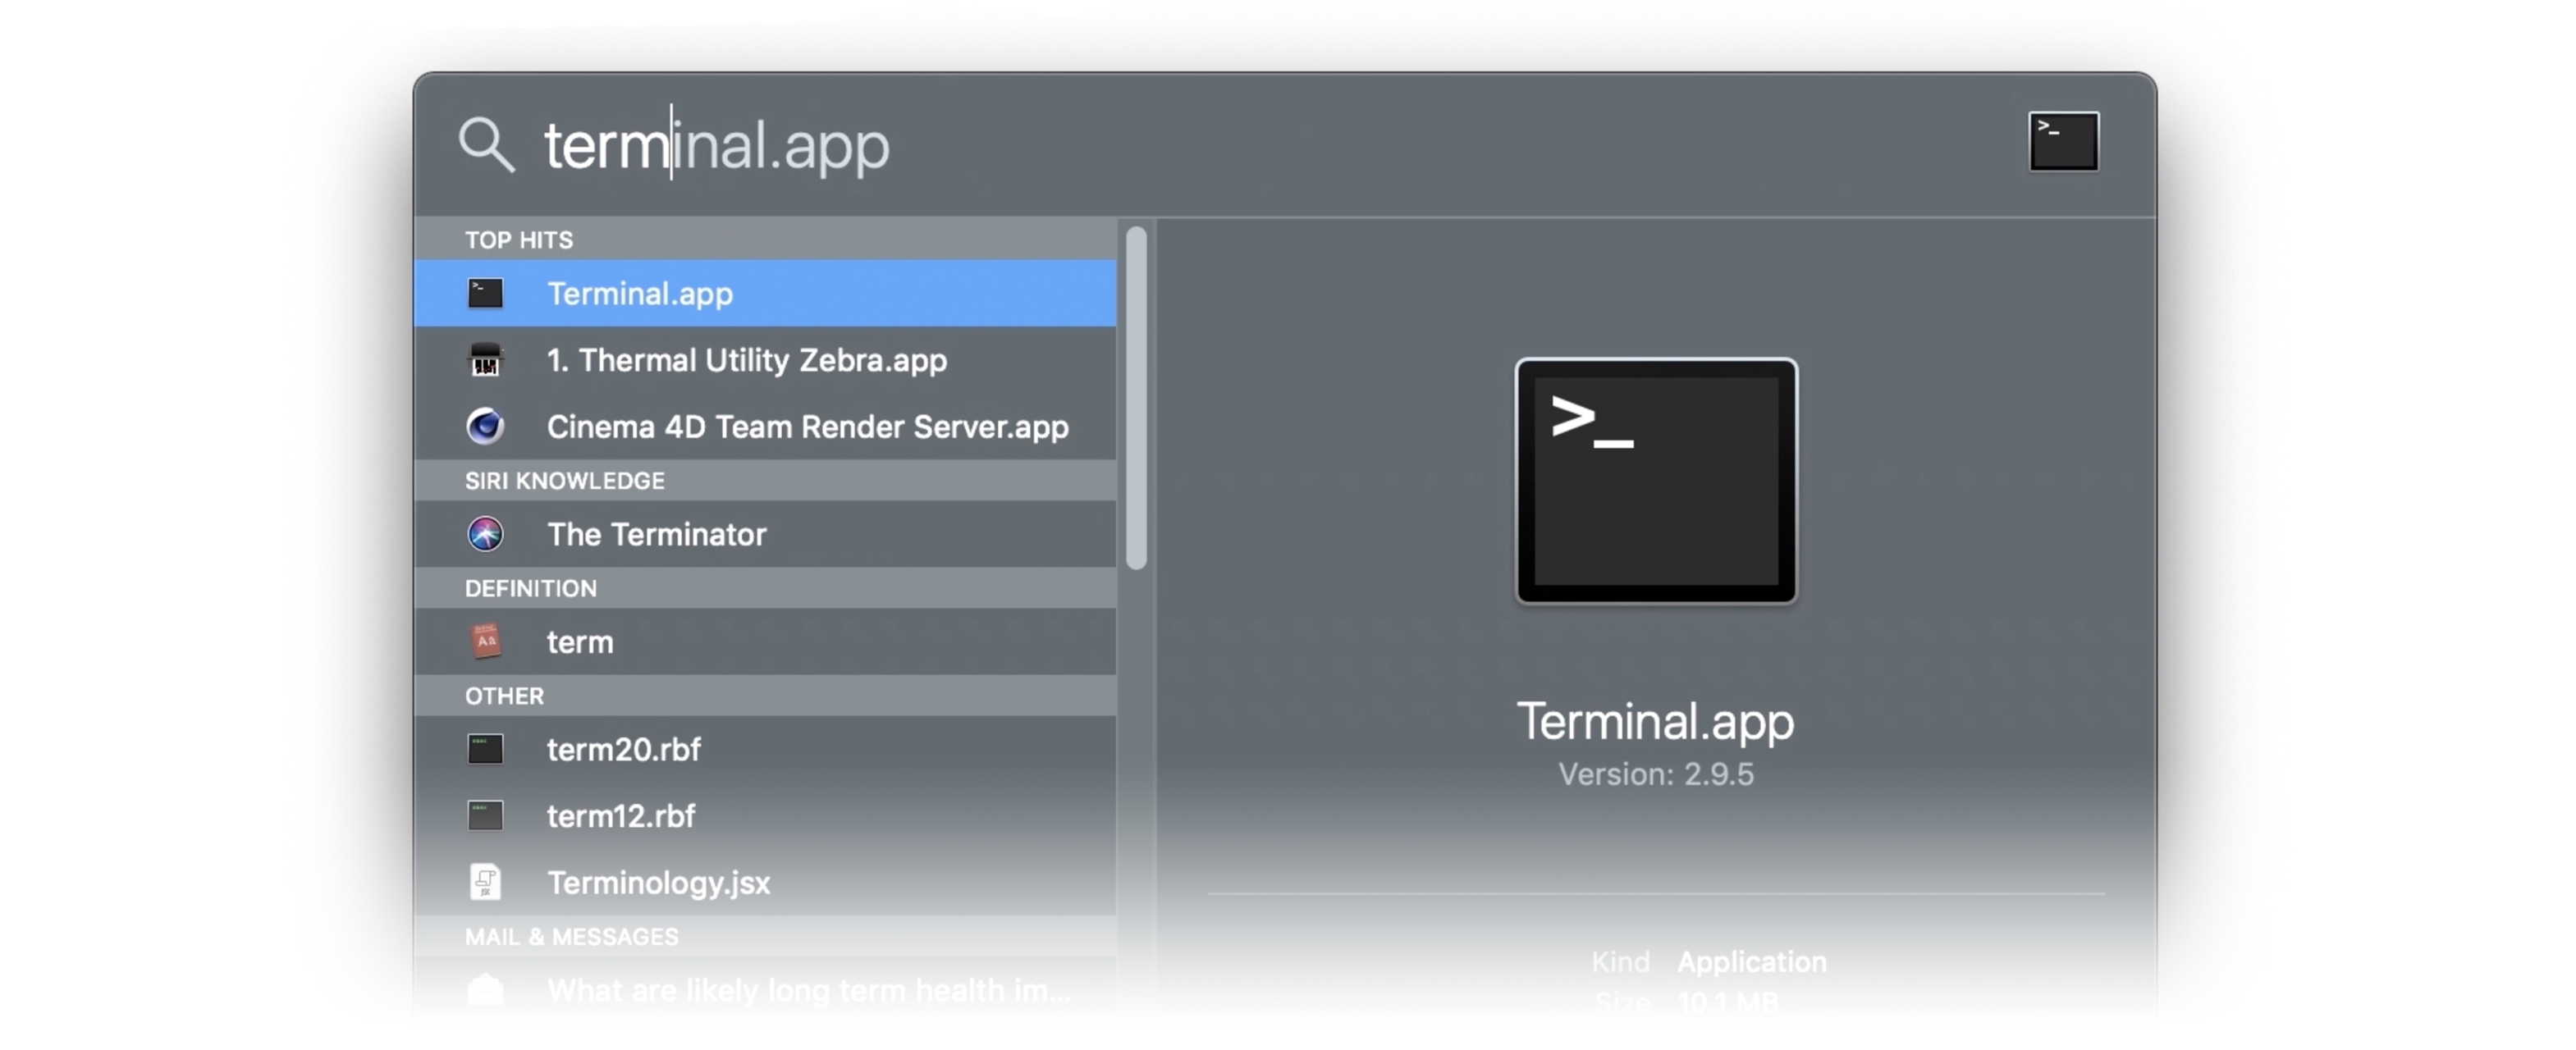 A screenshot of the Spotlight Search on the Mac, with 'terminal.app' typed into the search bar. The top hit, 'Terminal.app' is highlighted below the search bar.